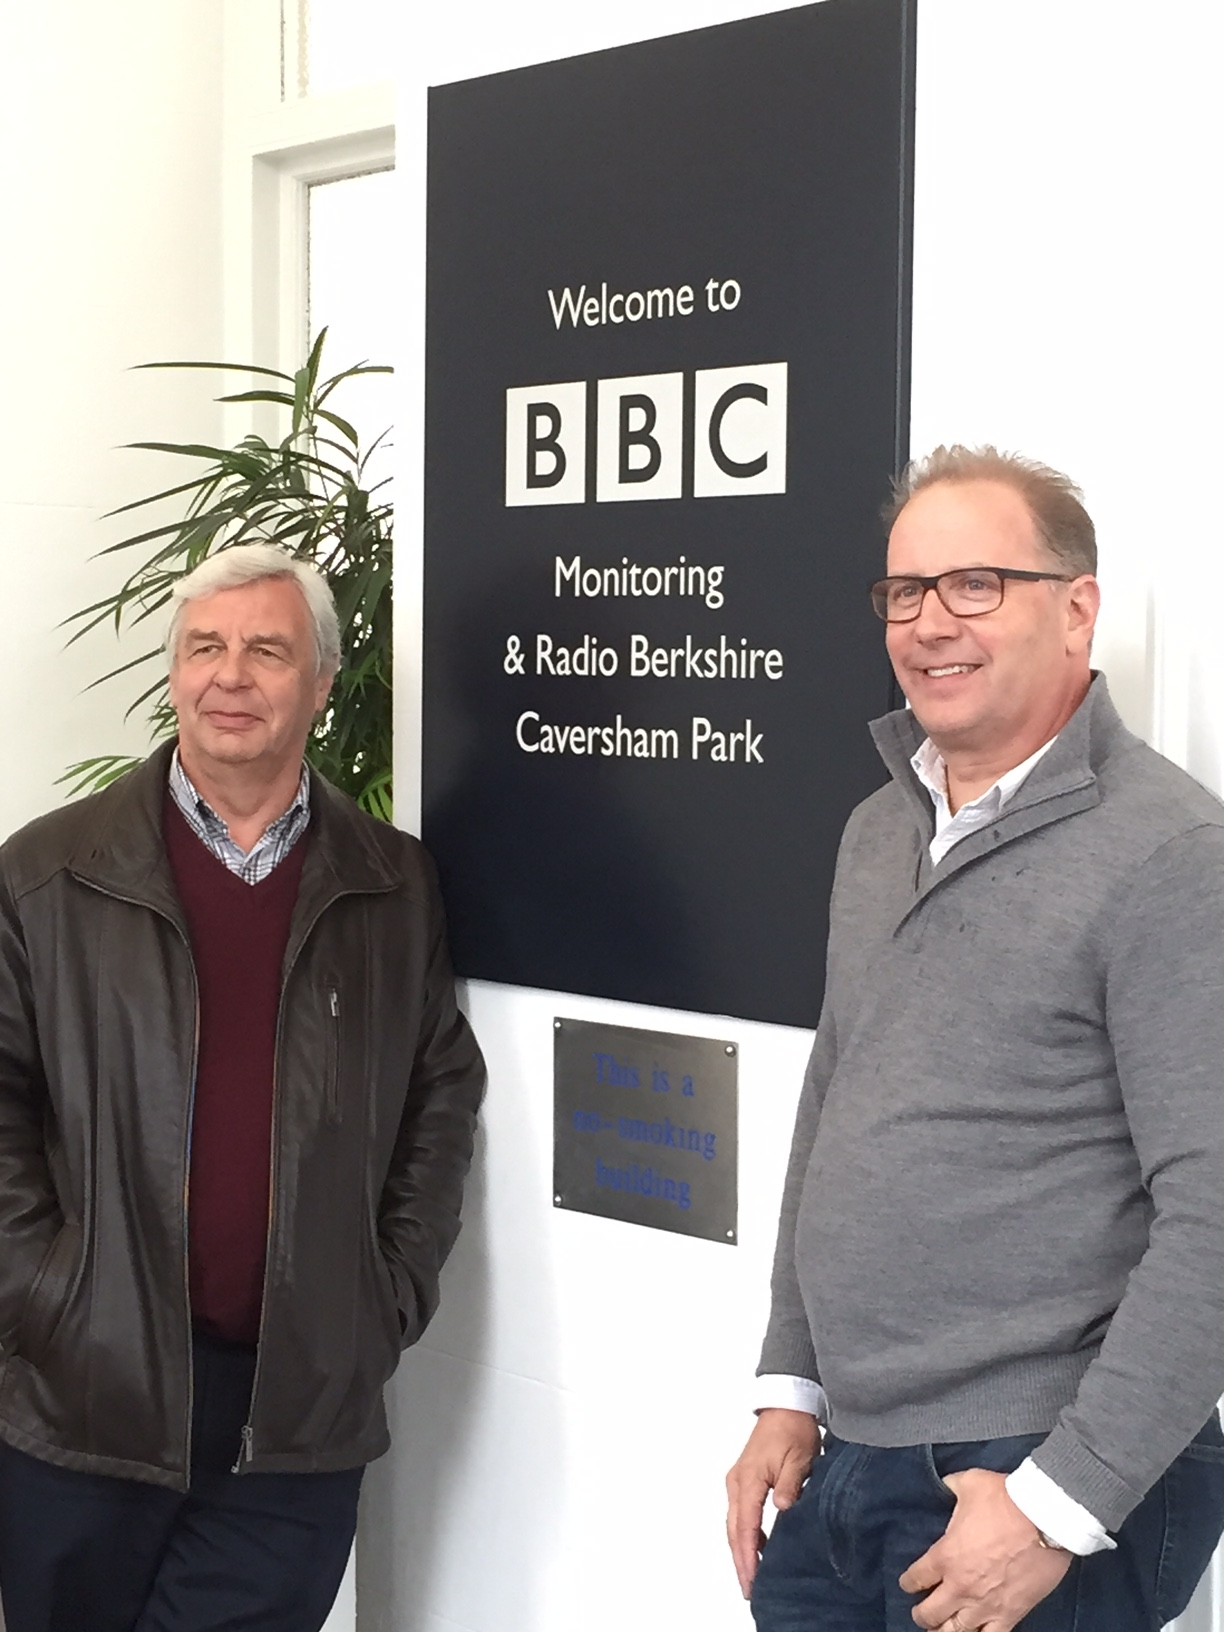 Producer John Castell and Playwright Scott Wright at BBC Berkshire, Caversham Park, after their 14 May 2015 'live' interview about the play with BBC's Lynn Parsons.